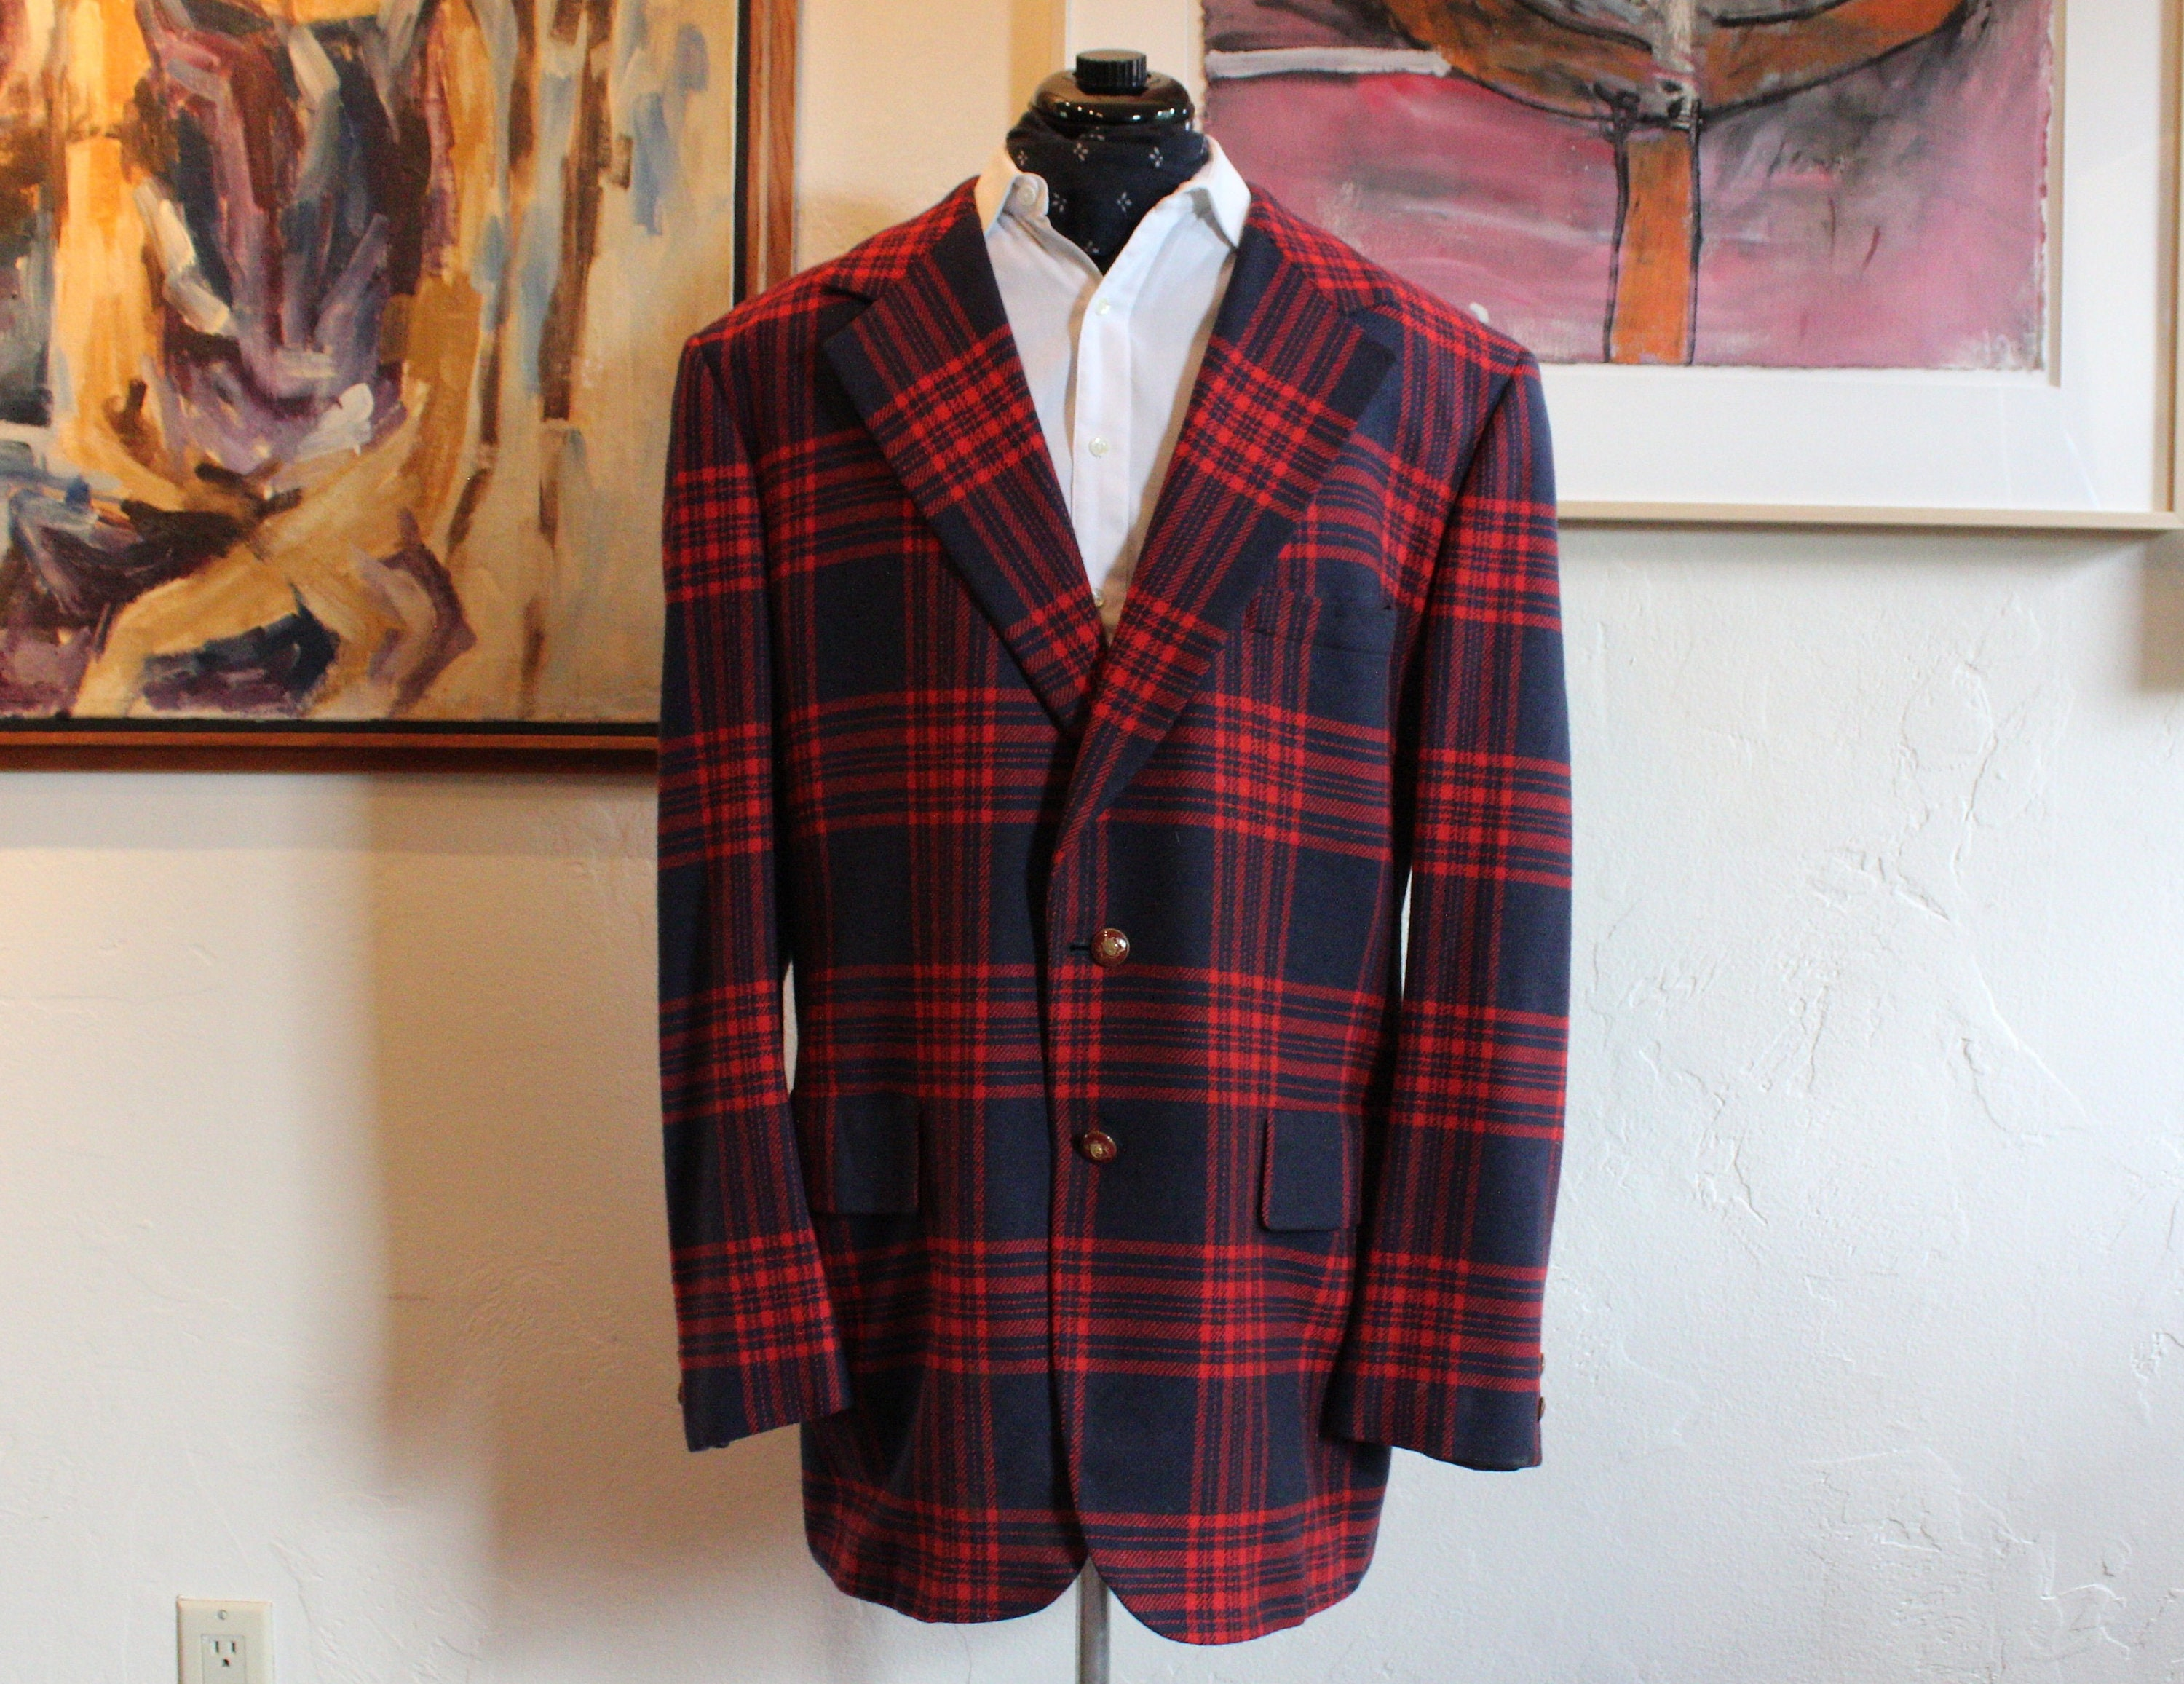 1960s – 70s Men's Ties | Skinny Ties, Slim Ties Vintage Late-1960s Early 1970s Lebow Clothes Blue  Red Plaid Swanky Mens Sport Coat Cashmere Coat, Size 44 Long $0.00 AT vintagedancer.com